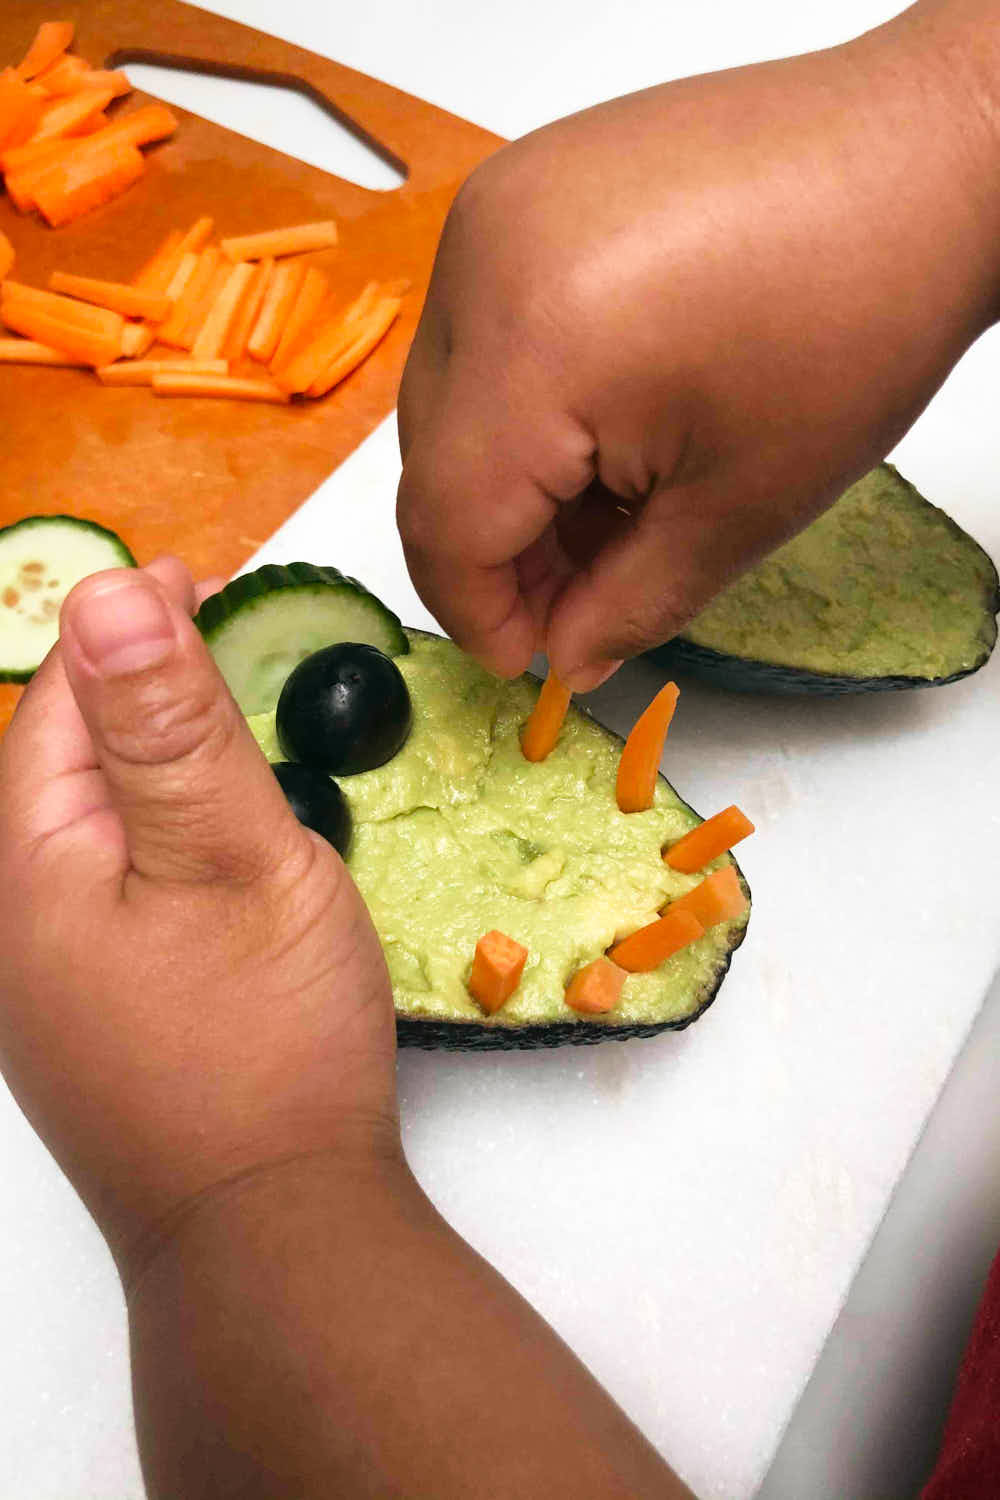 Healthy Veggie Dip - Hummus and Guacamole dip being assembled by kid into crocodile shape